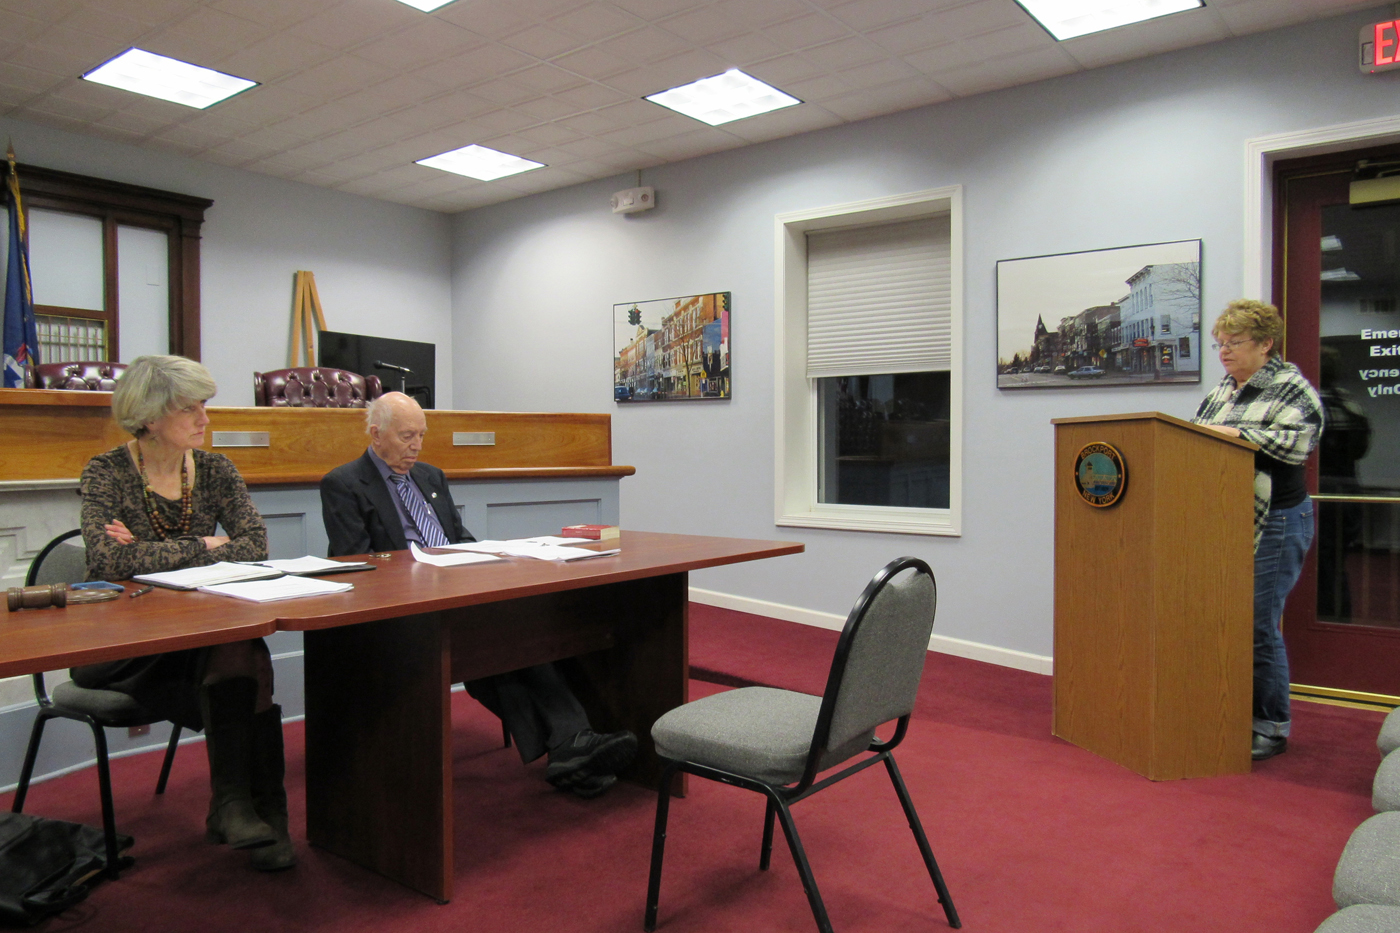 Brockport Mayor Margaret Blackman and Deputy Mayor Bill Andrews listen as Josephine Matela of ProBrockport, addresses trustees before their work session on February 22.  Matela told trustees there is no need for a pre-dissolution vote study. K. Gabalski photo